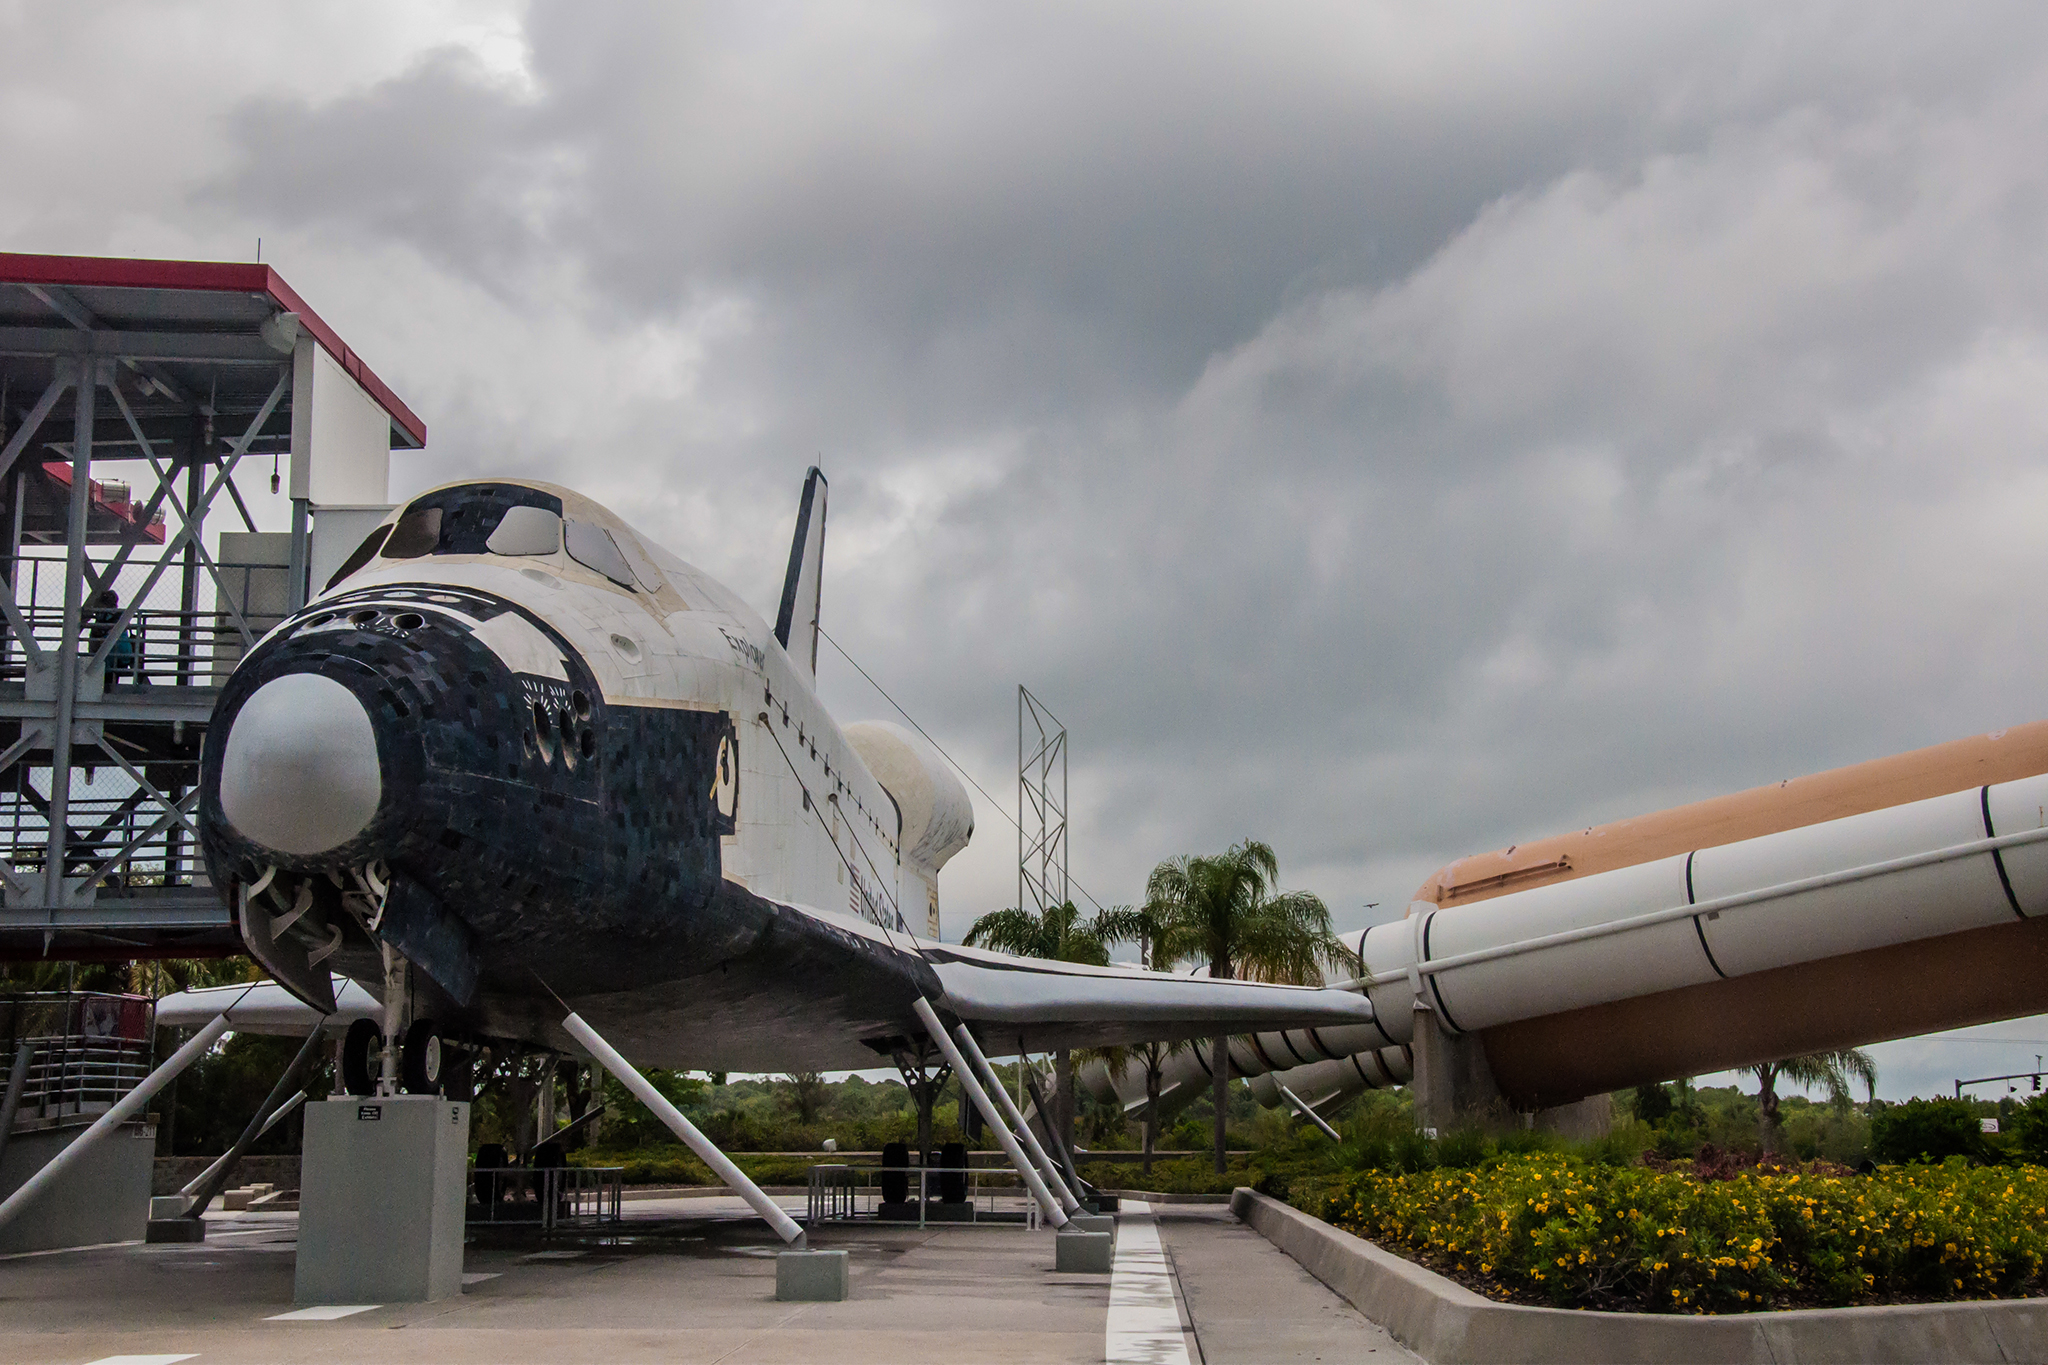 Space Shuttle Explorer (May 2010)